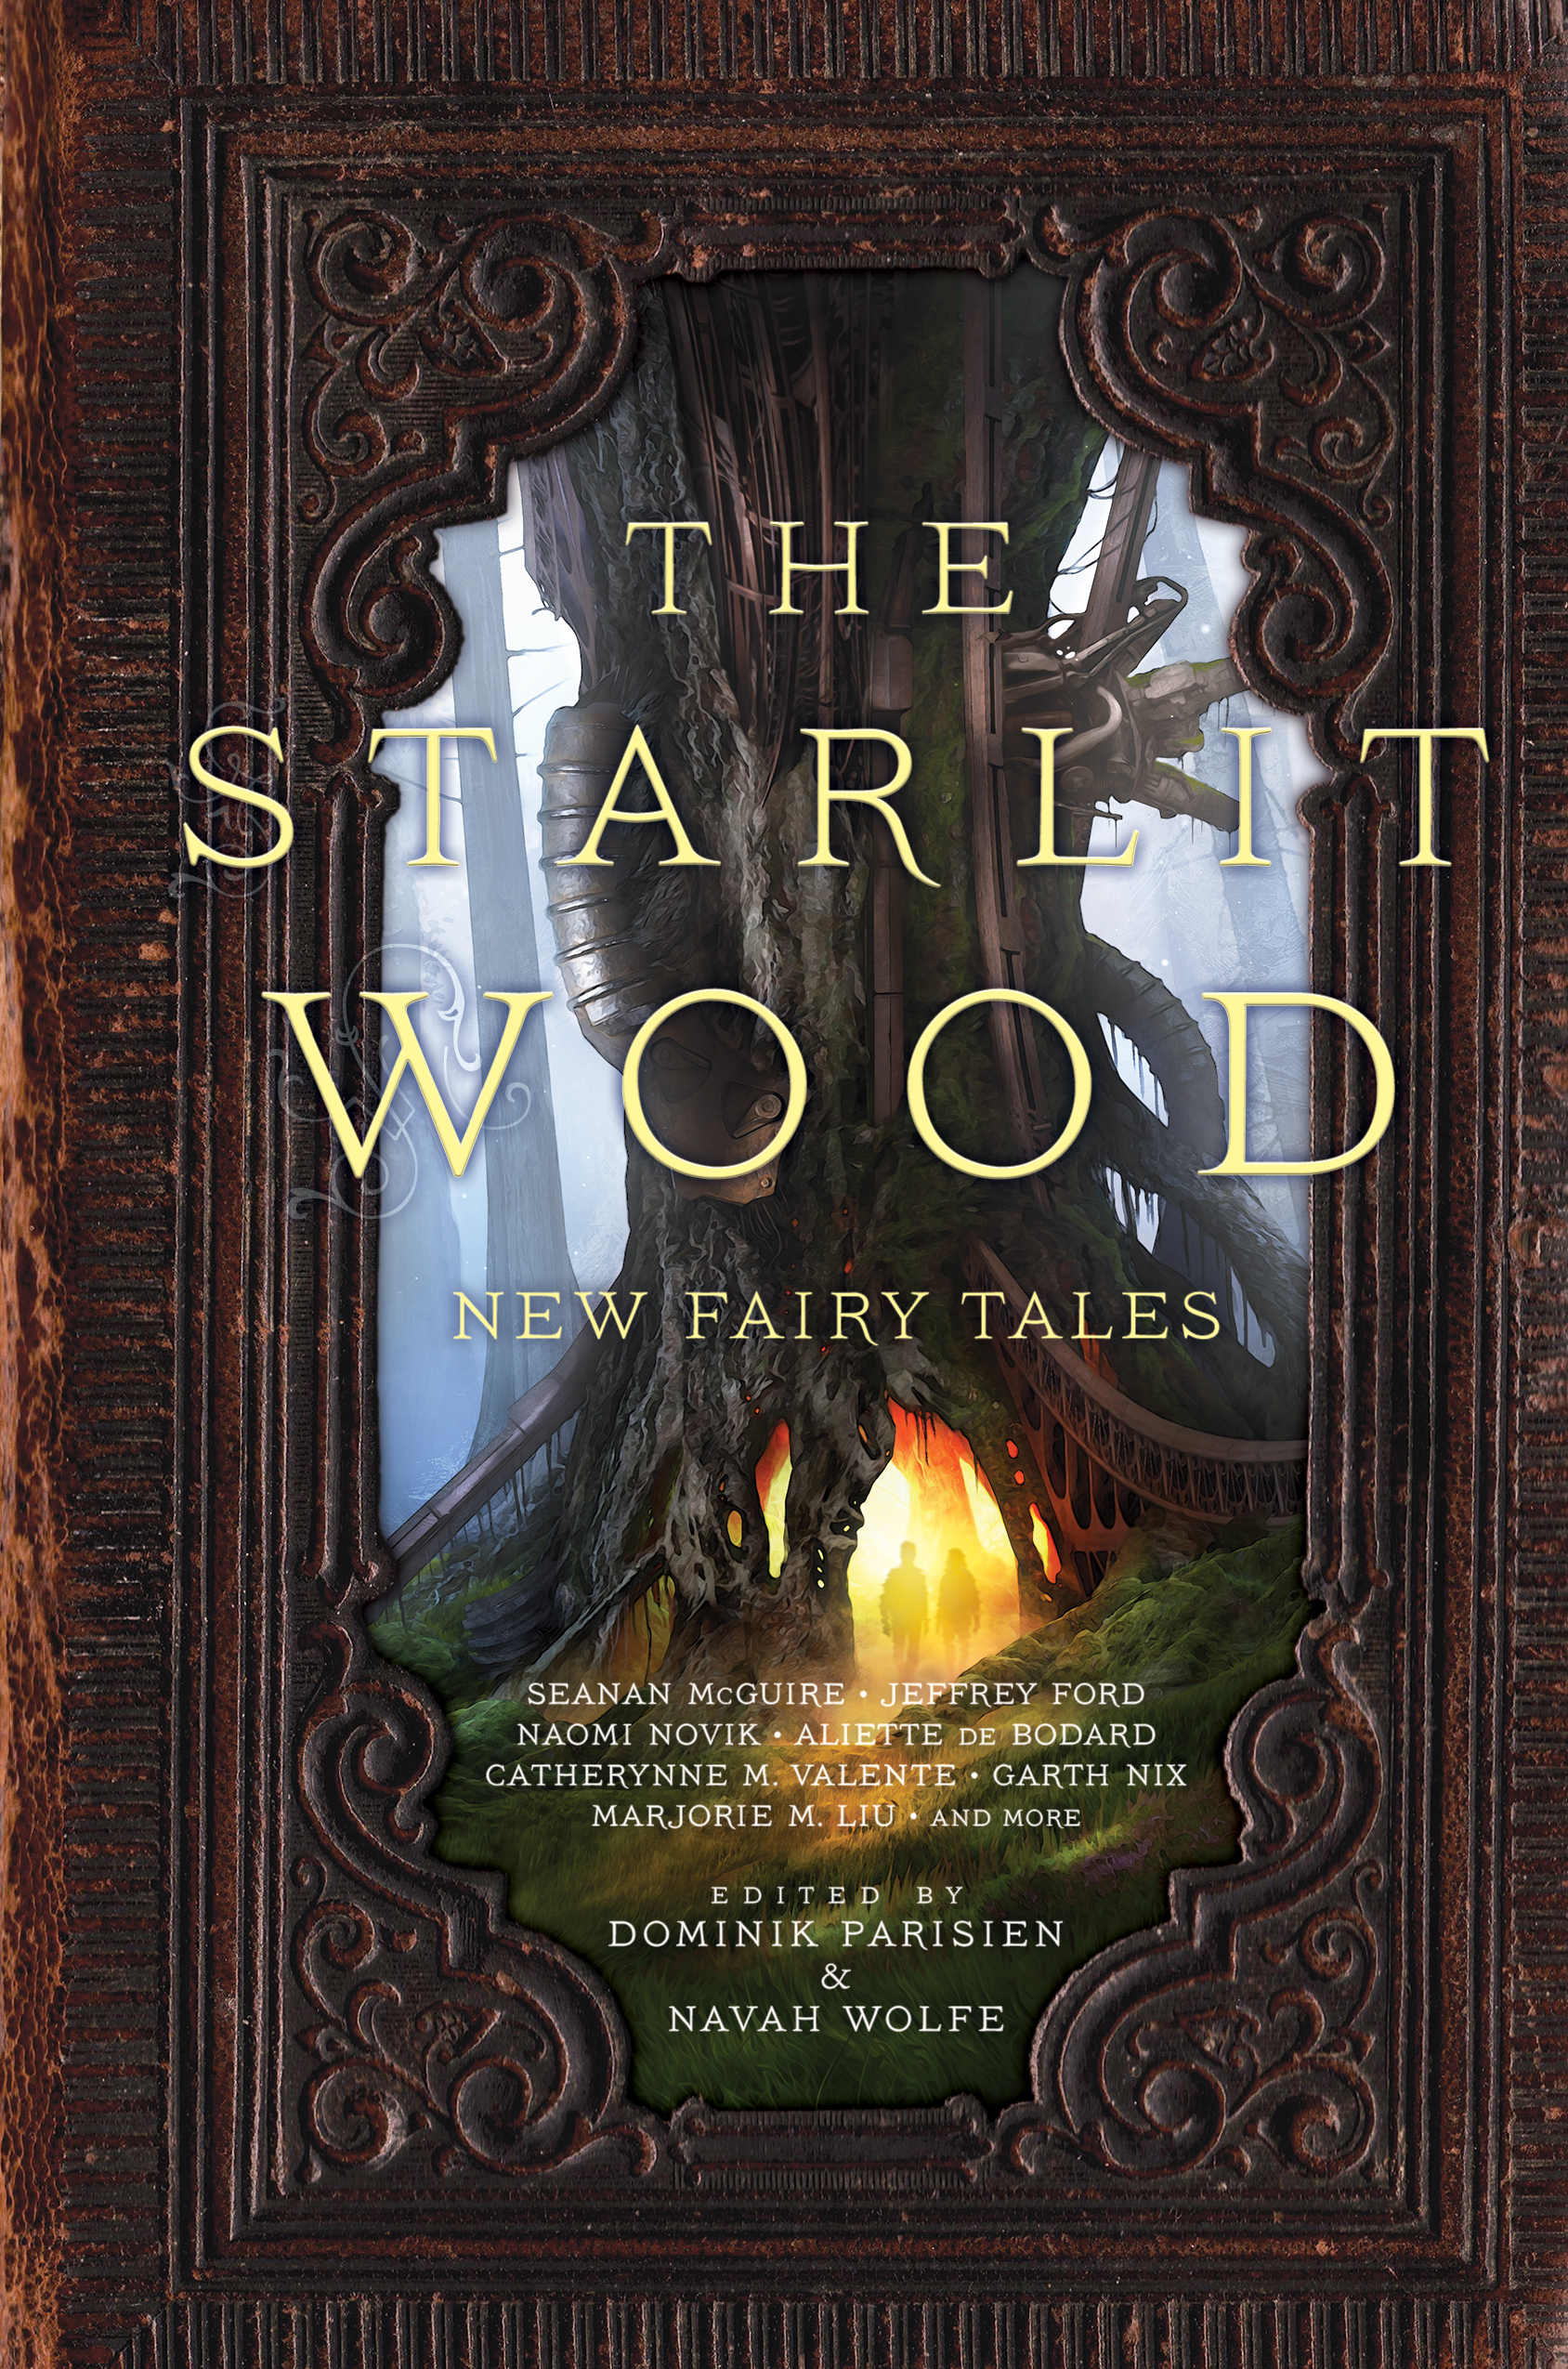 Cover of The Starlit Wood